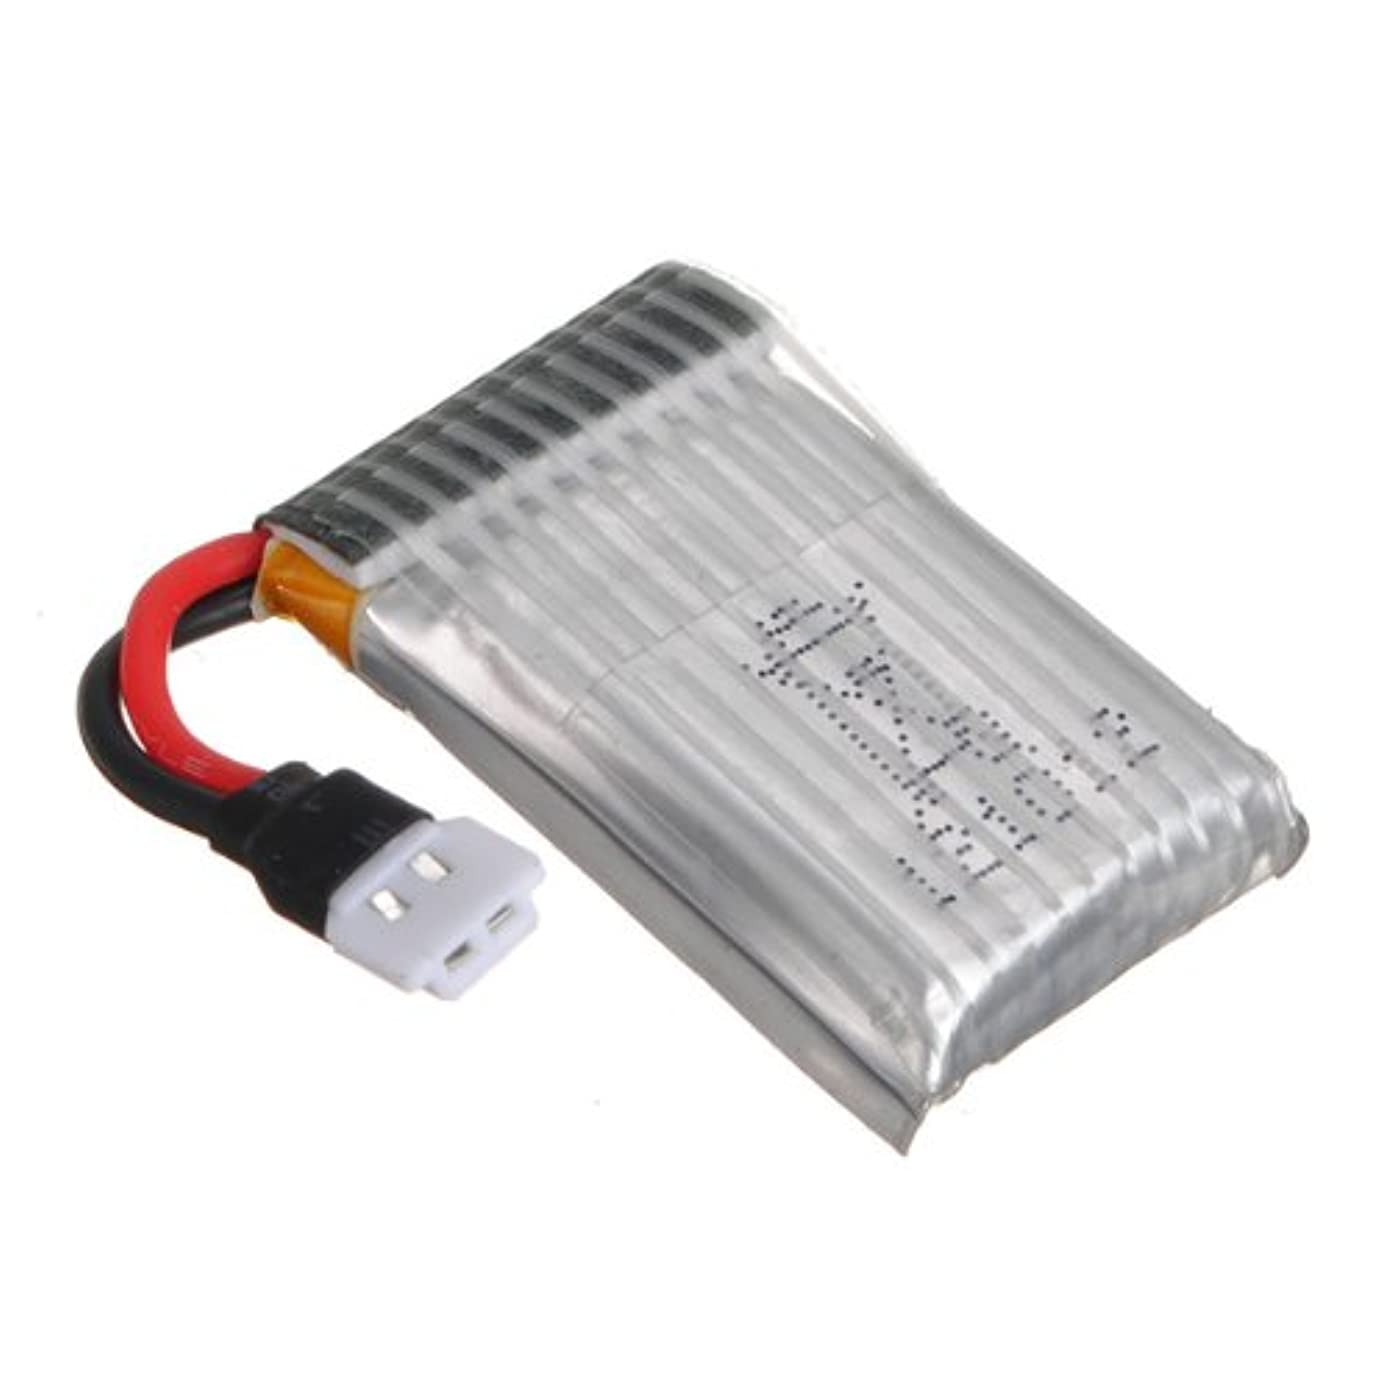 Quickbuying 3.7V 240mAh Battery For Hubsan X4 H107L H107C U816A V252 RC Quadcopter